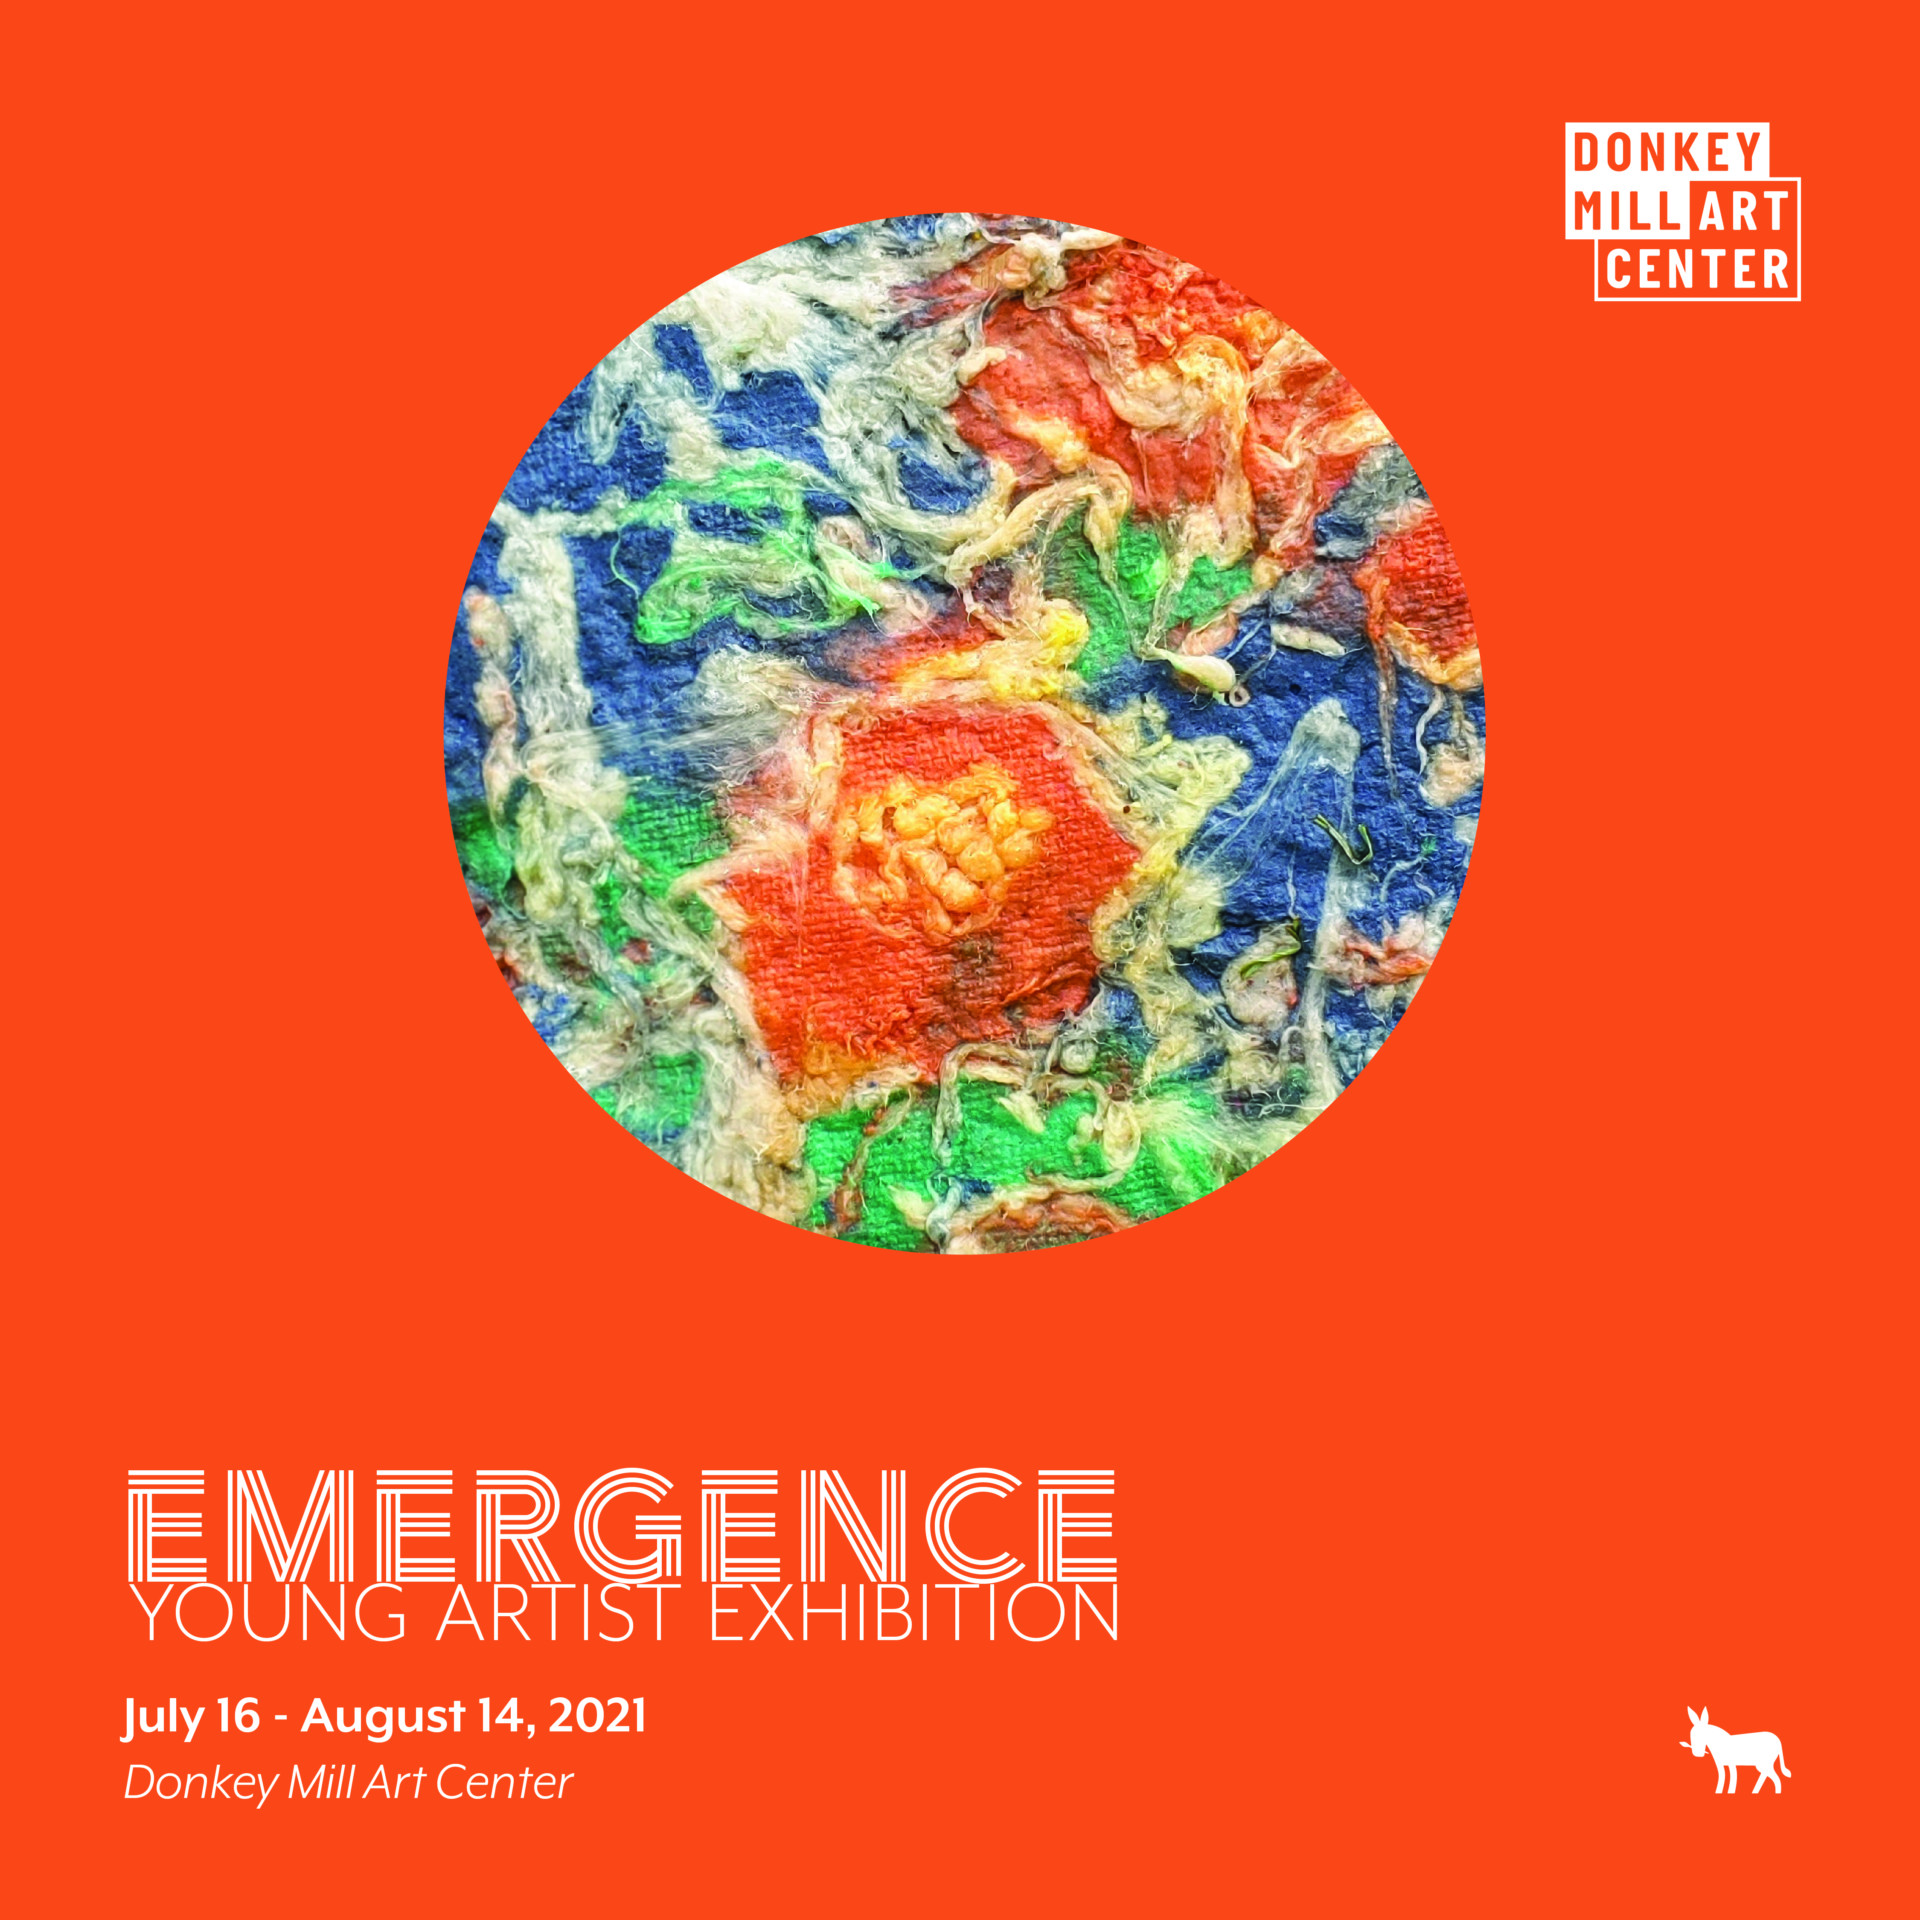 Emergence: Young Artist Exhibition